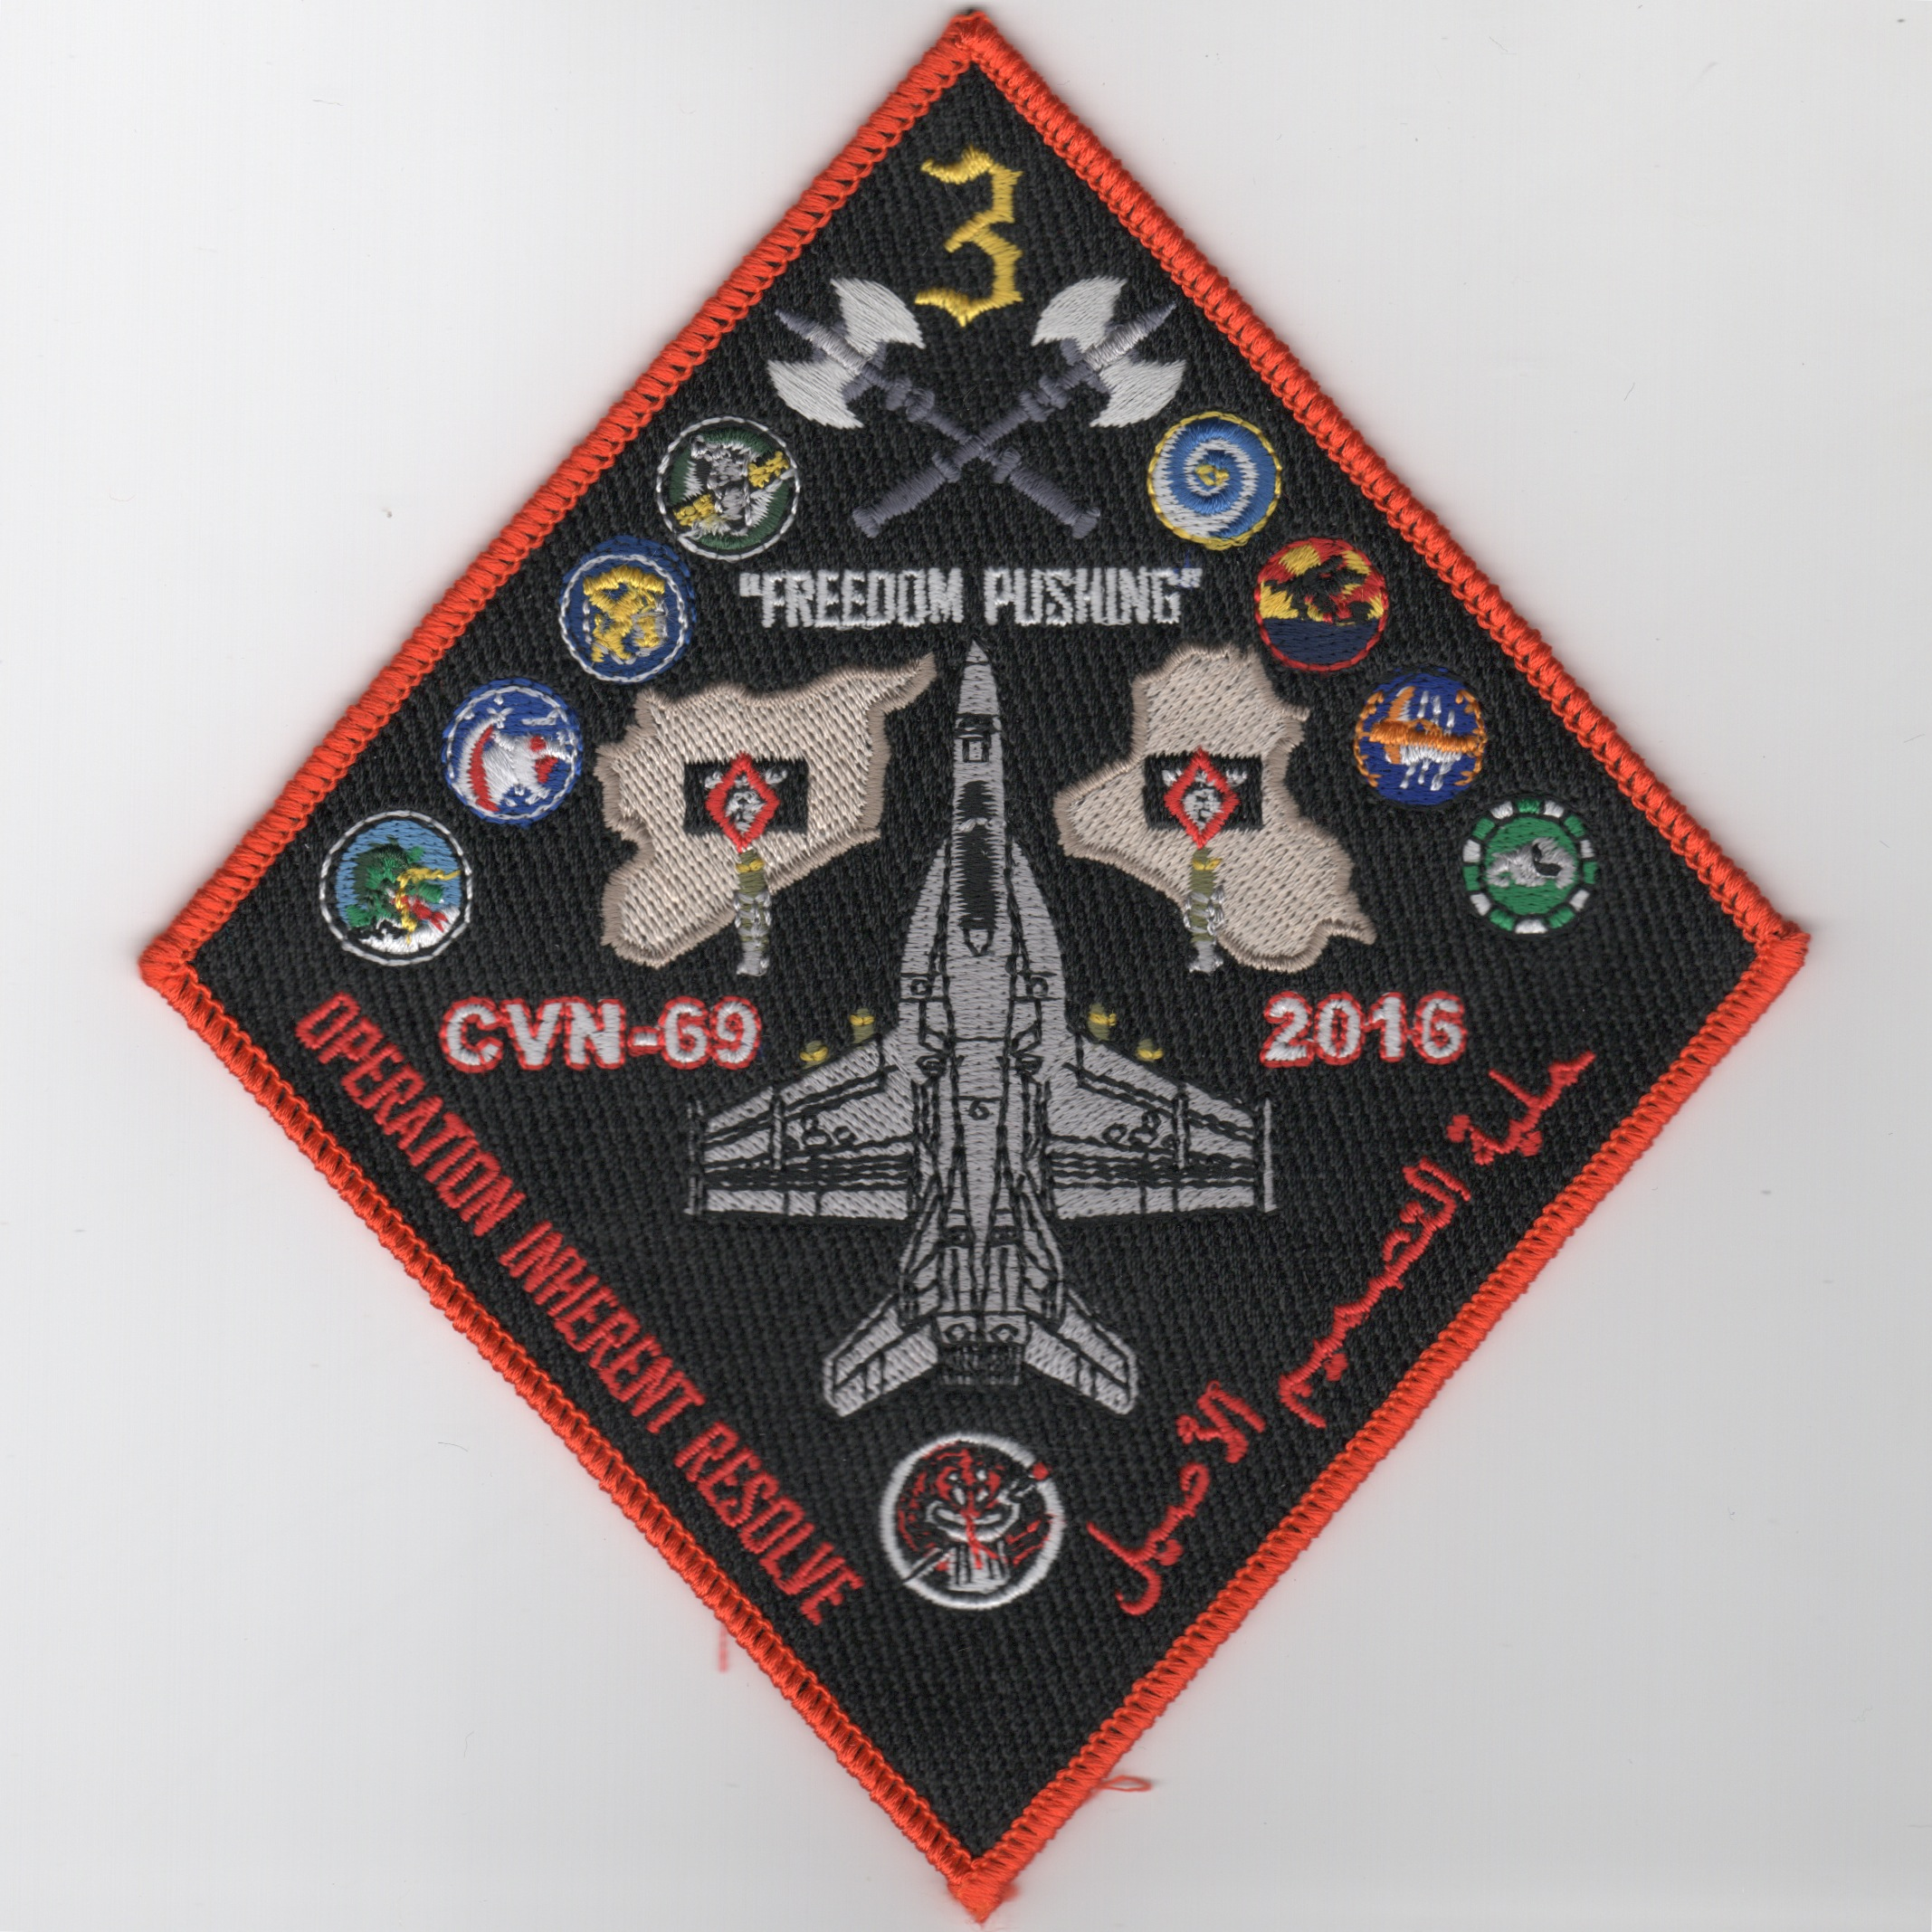 CVN-69 2016 OIR 'FREEDOM PUSHING' Patch